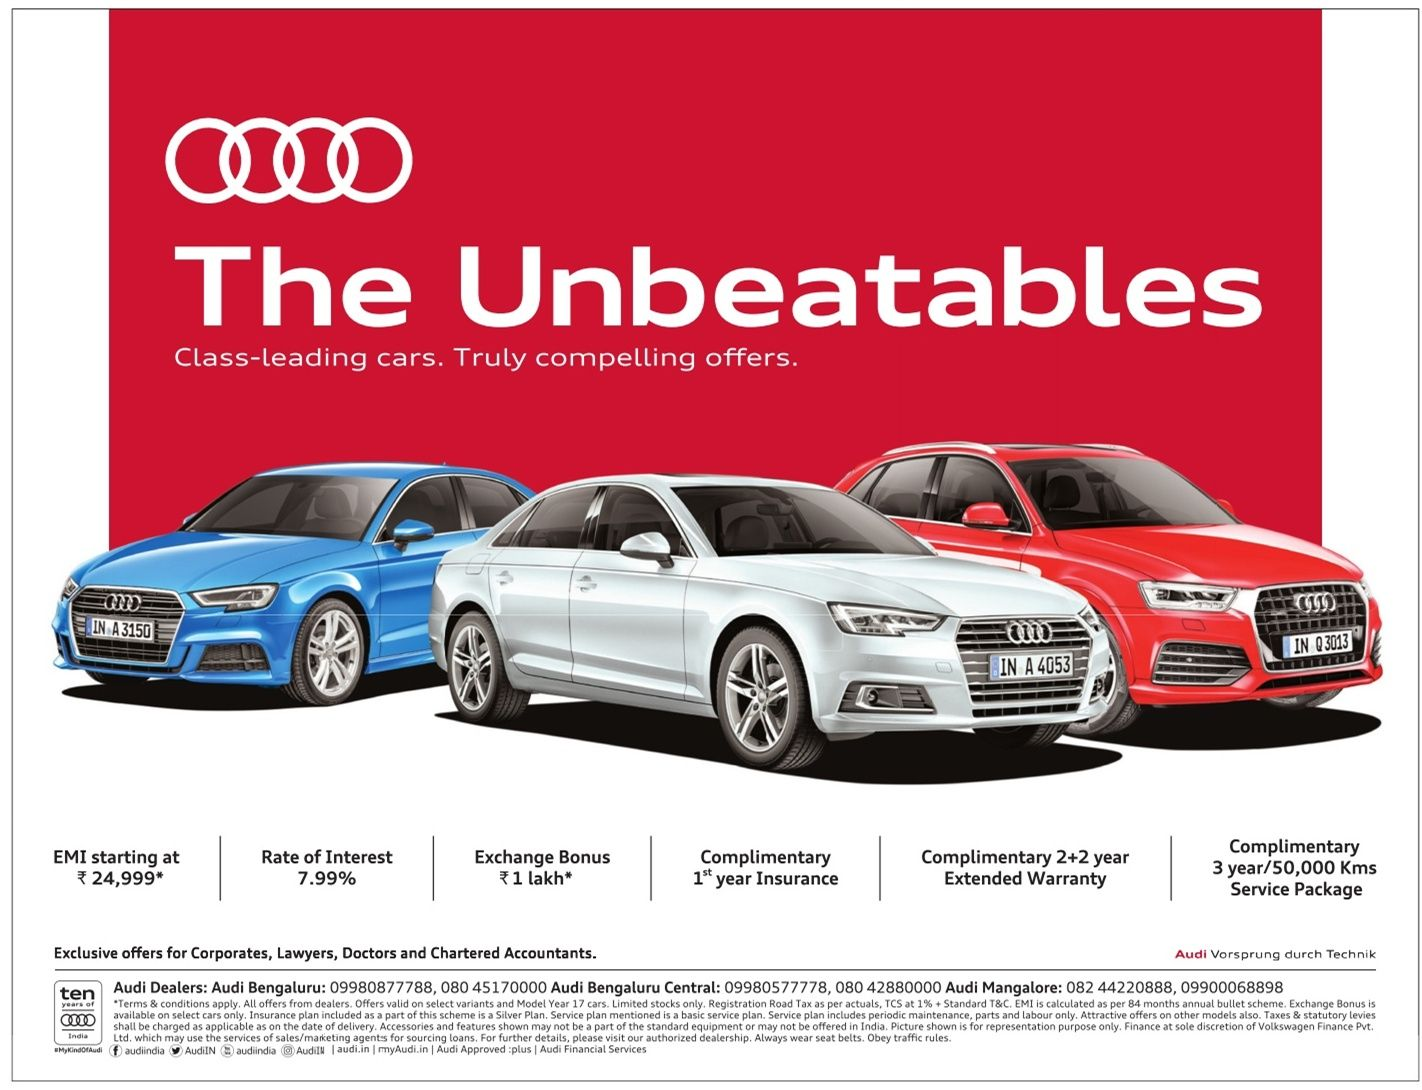 Audi Cars The Unbeatables Class Leading Cars Truly Compelling Offers Ad Audi Cars Car Advertising Audi